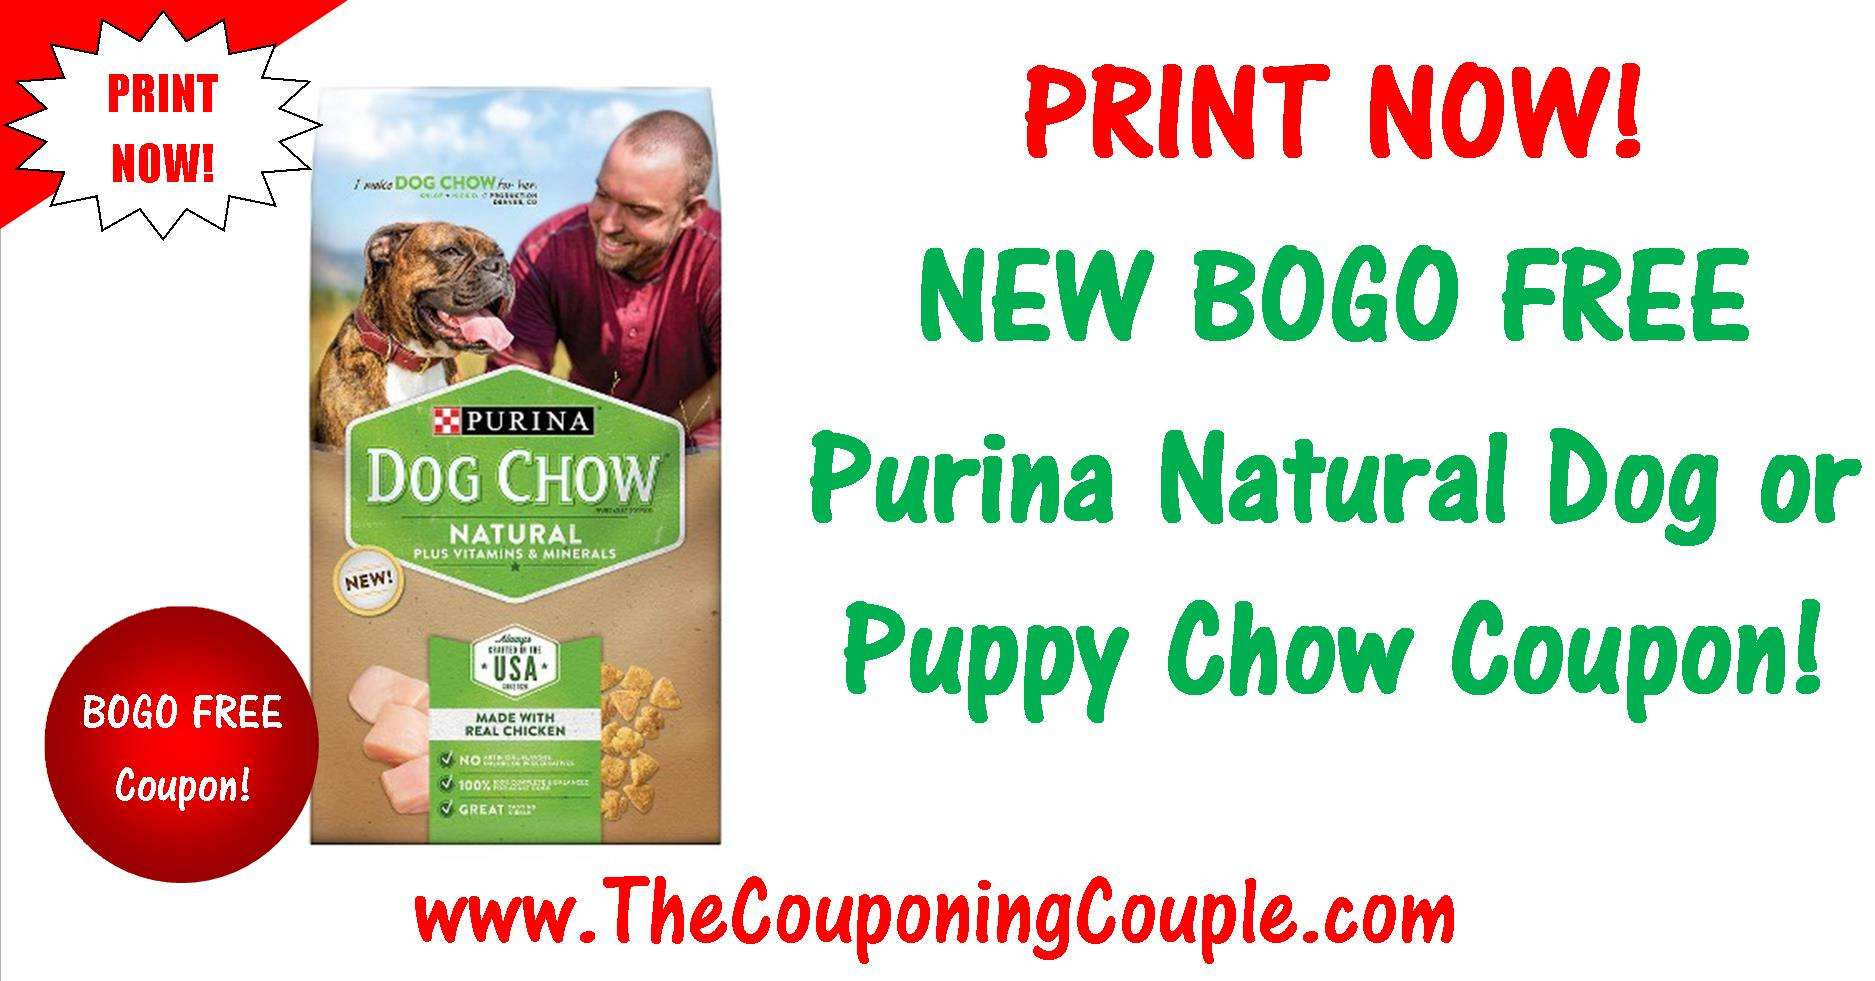 New Bogo Free Purina Natural Printable Coupon ~ Print Now! - Bogo Free Coupons Printable